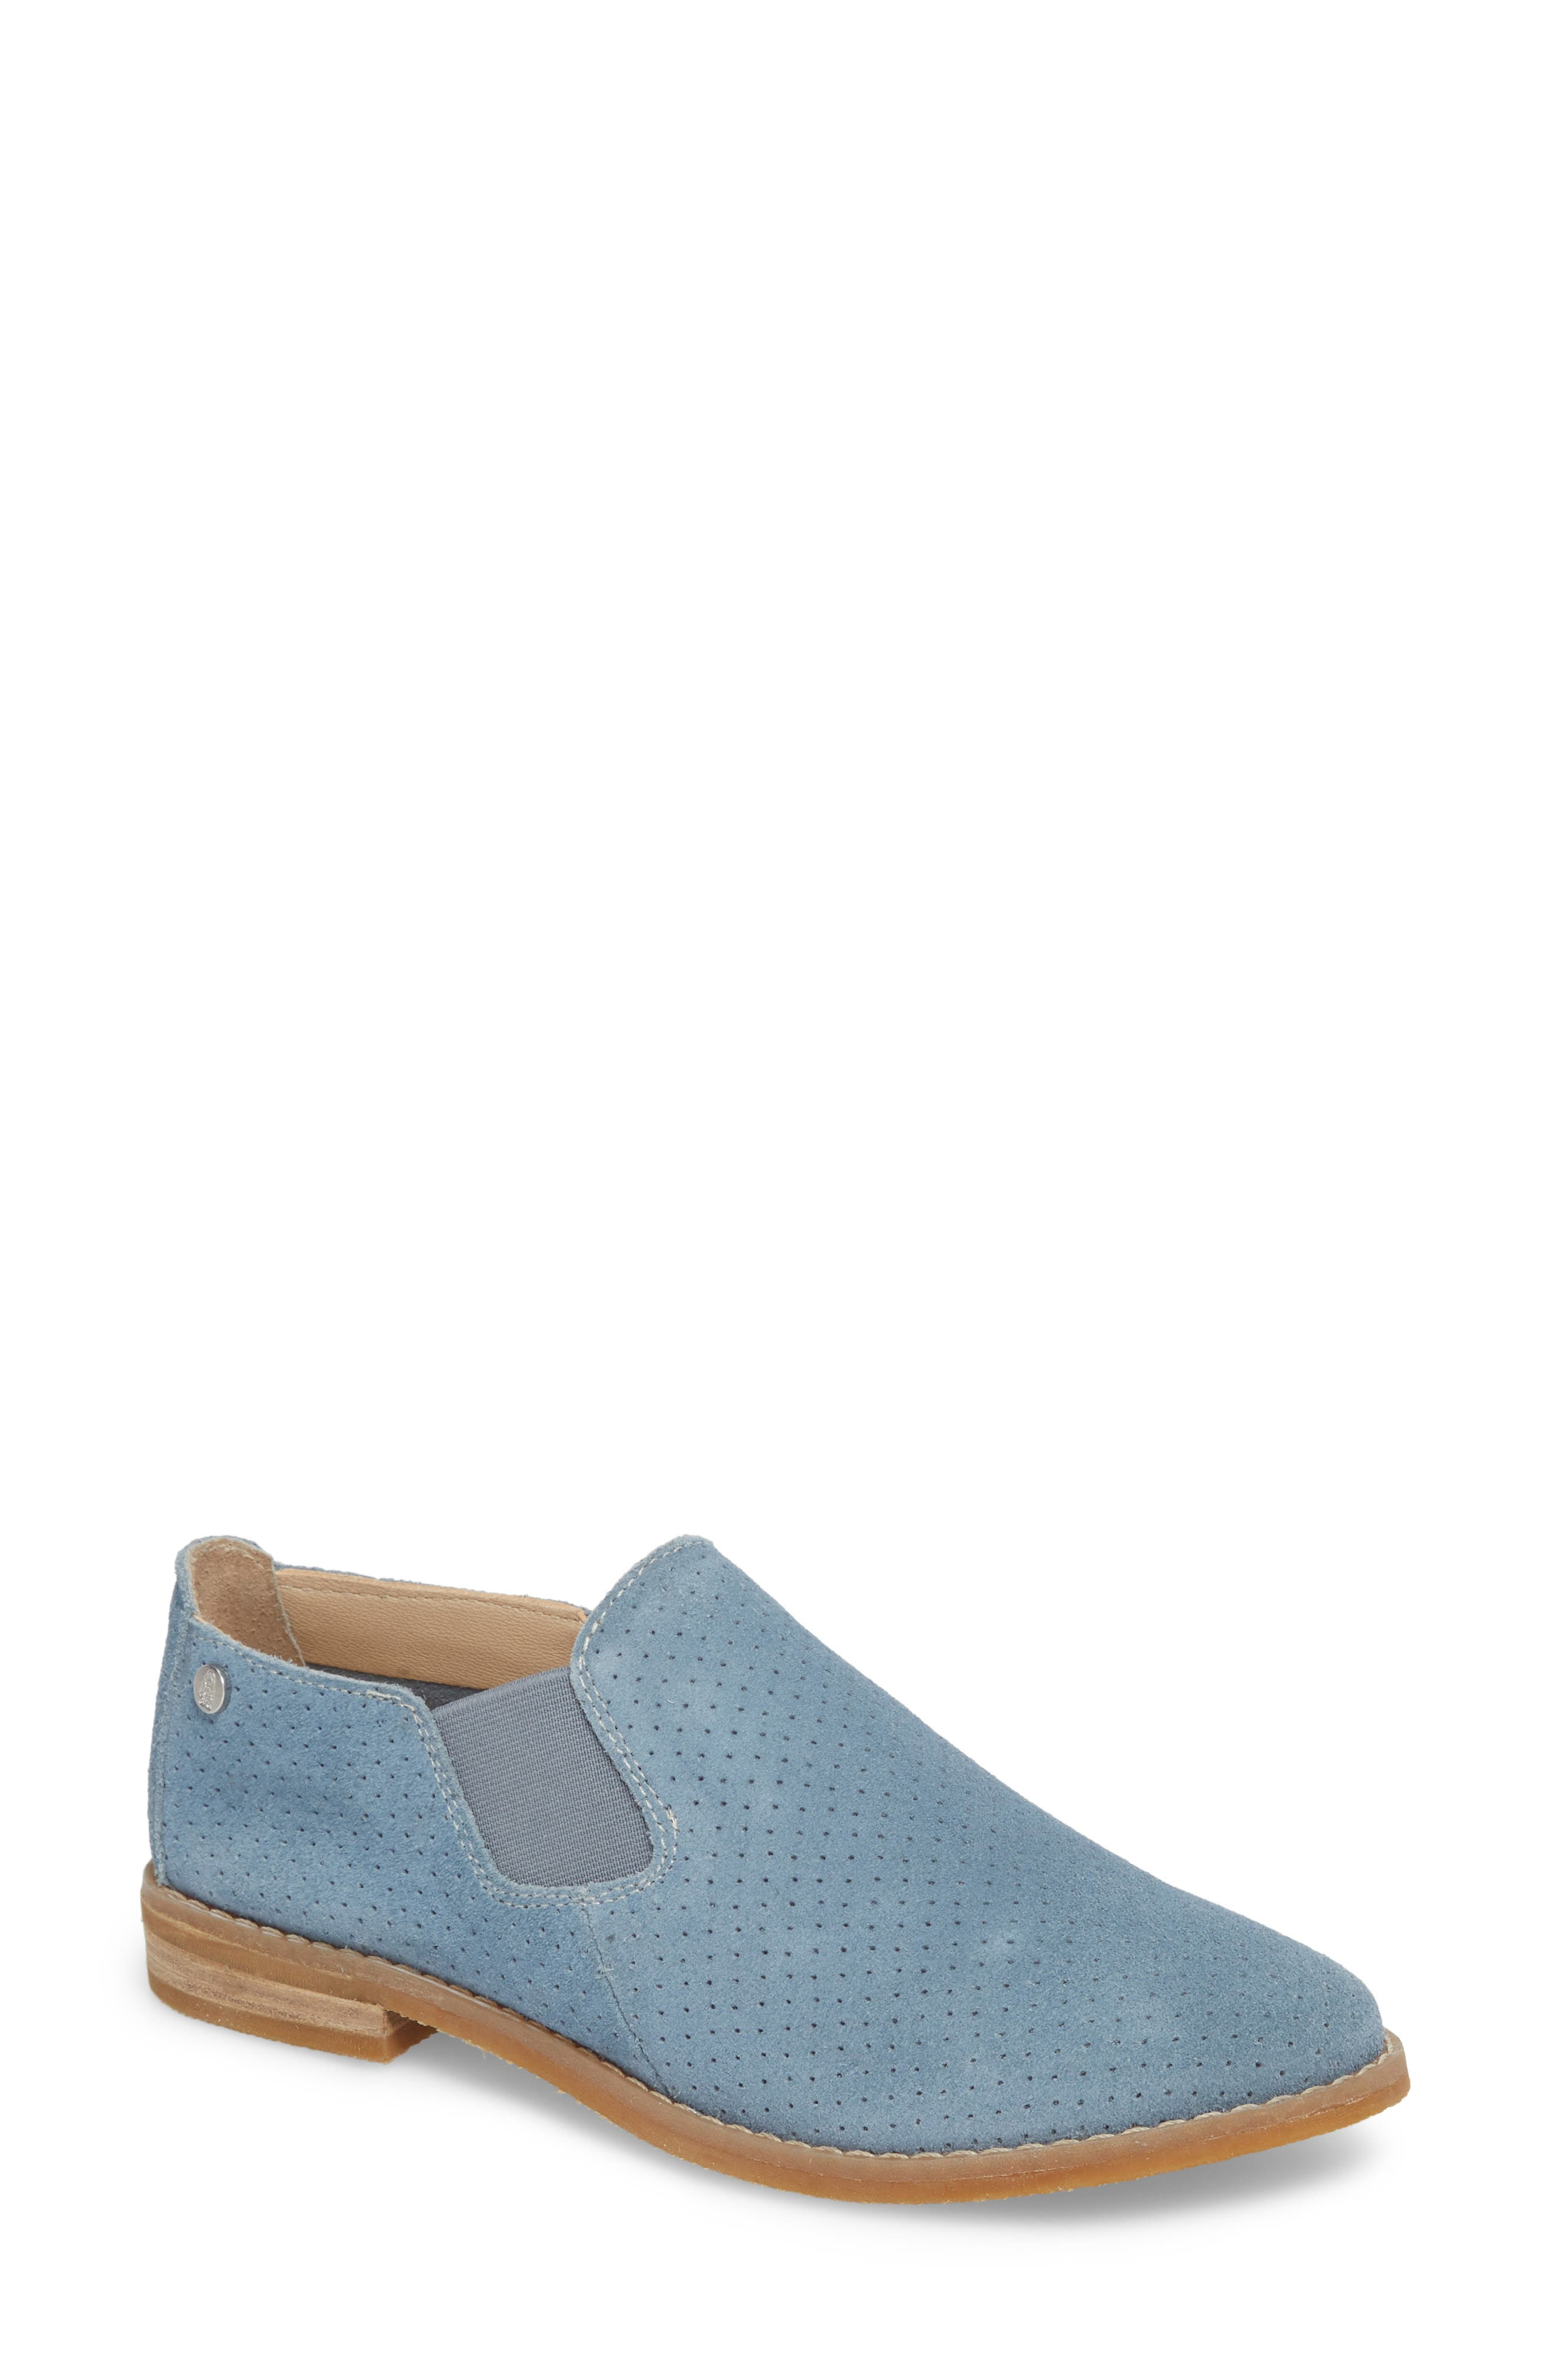 Hush Puppies Analise Clever Slip-On,                         Main,                         color, VINTAGE INDIGO SUEDE